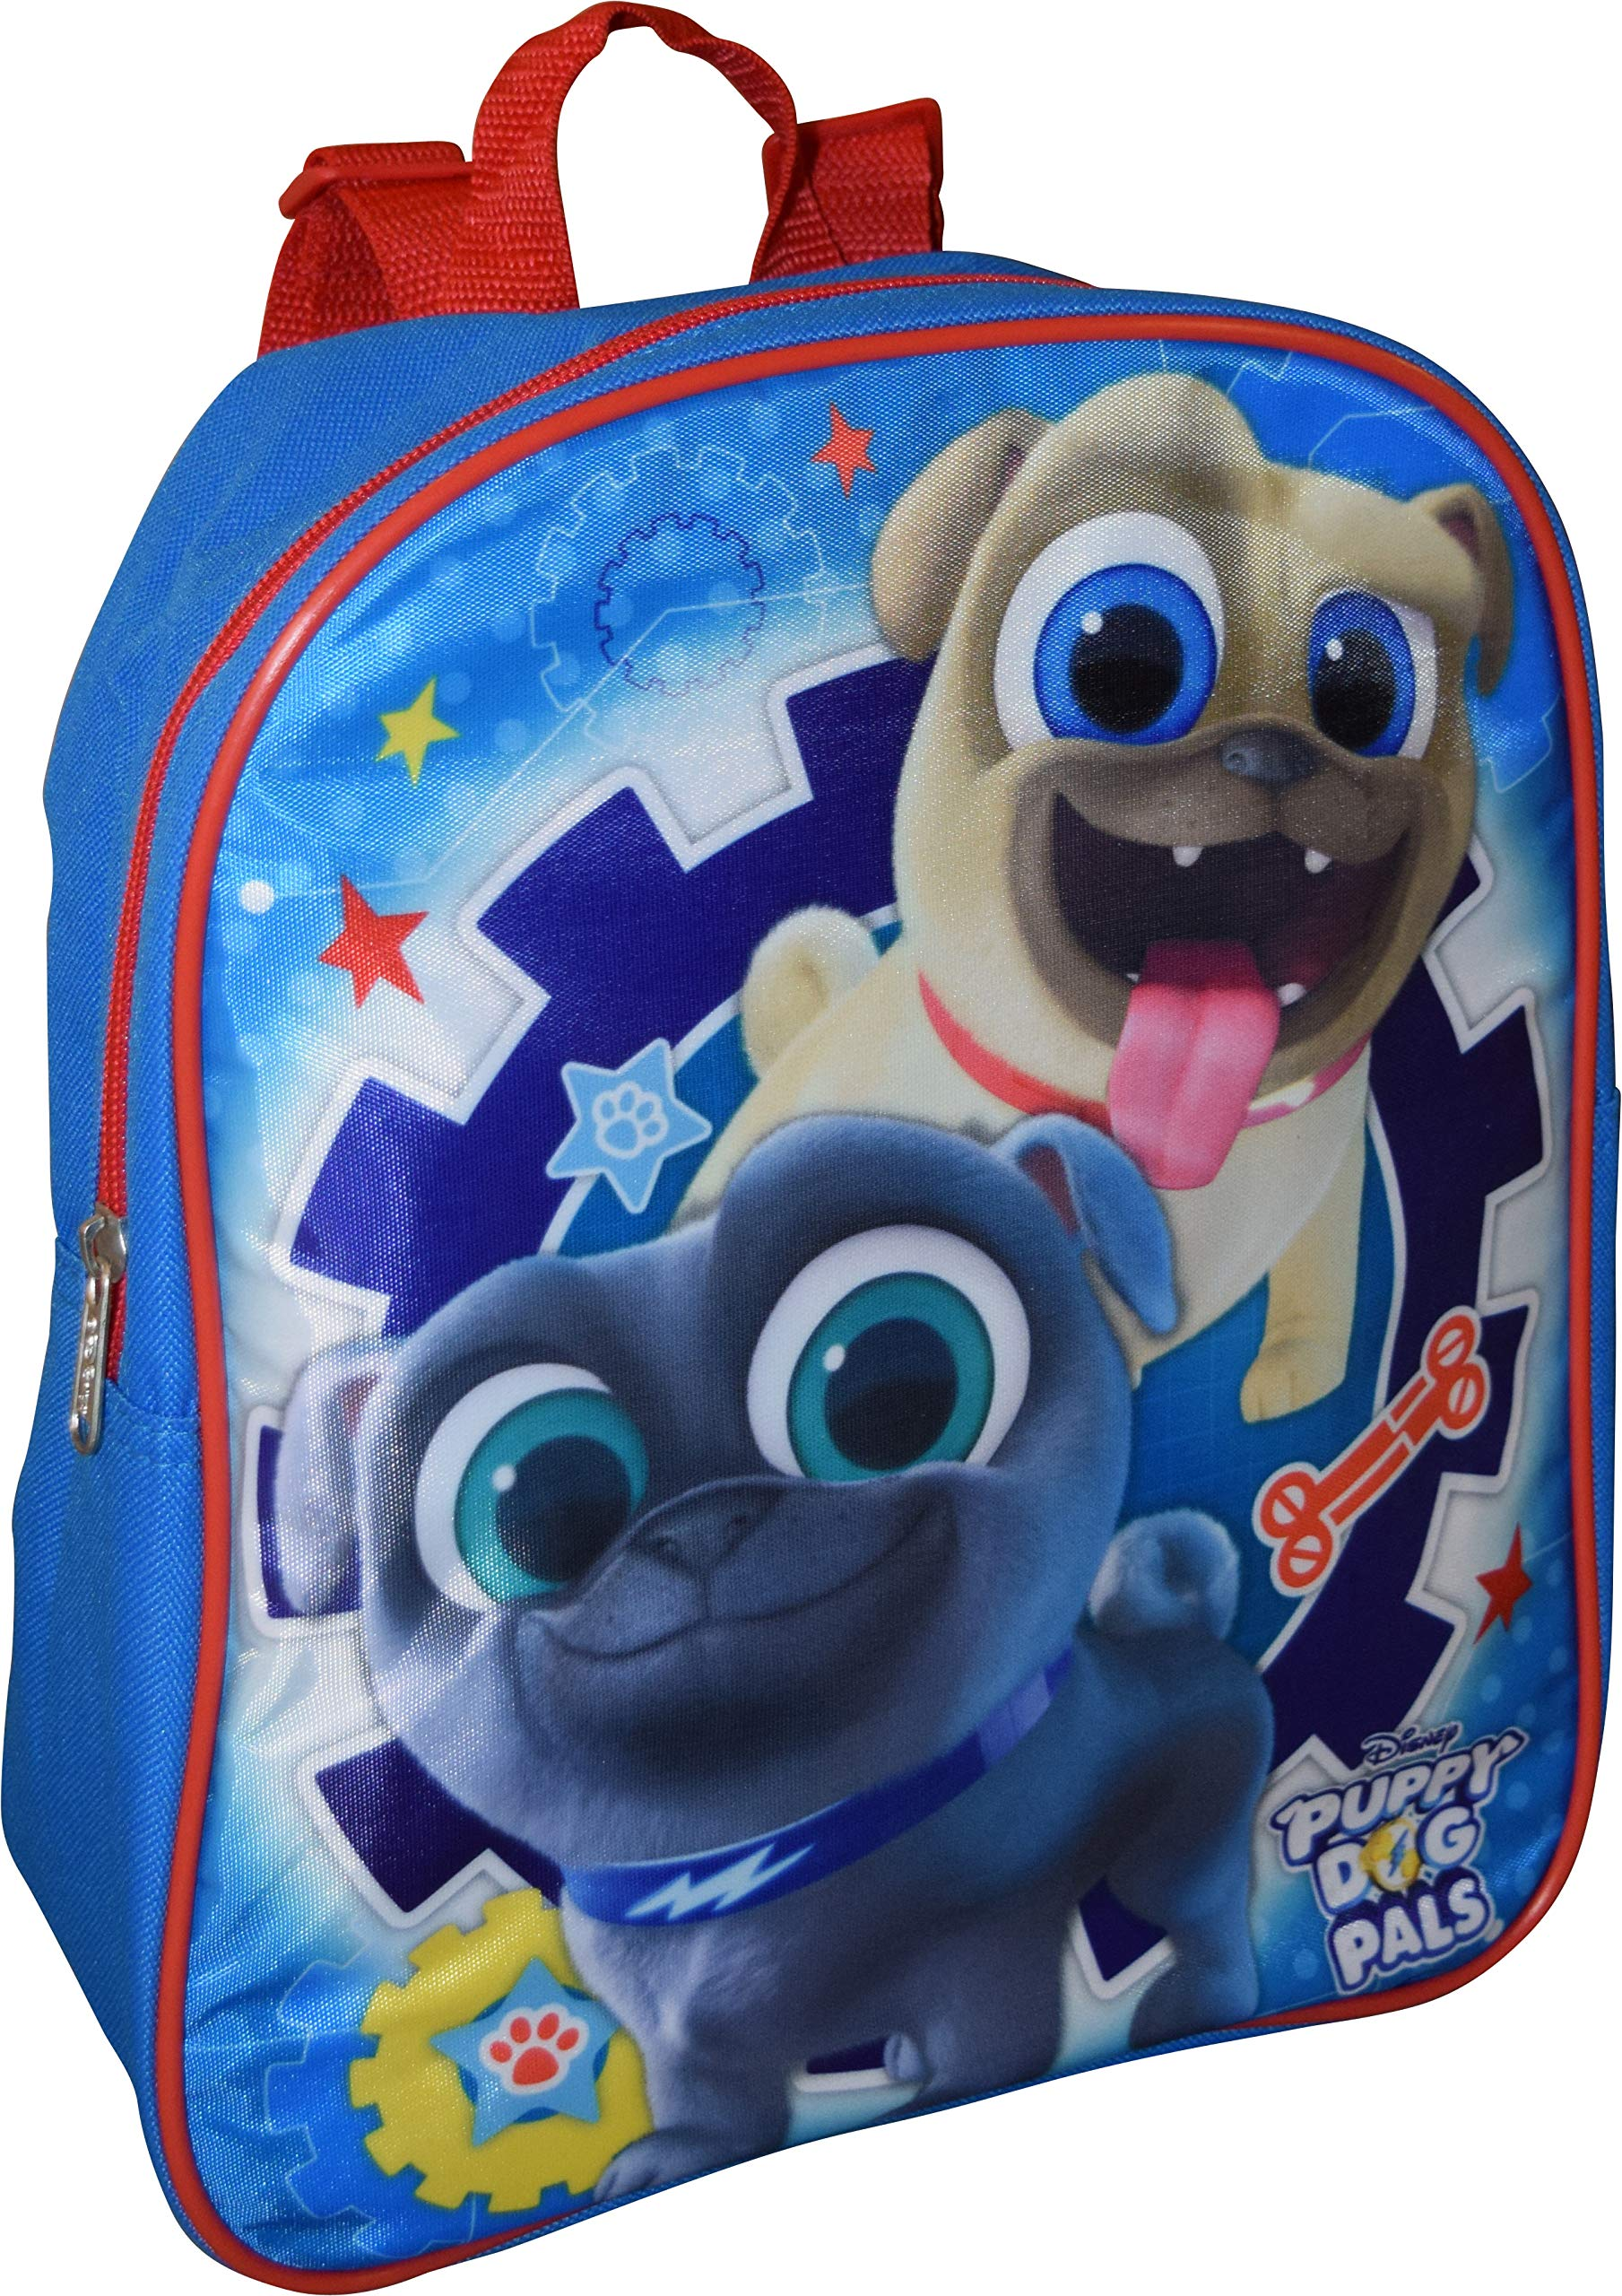 Disney Junior Puppy Dog Pals 12'' Backpack